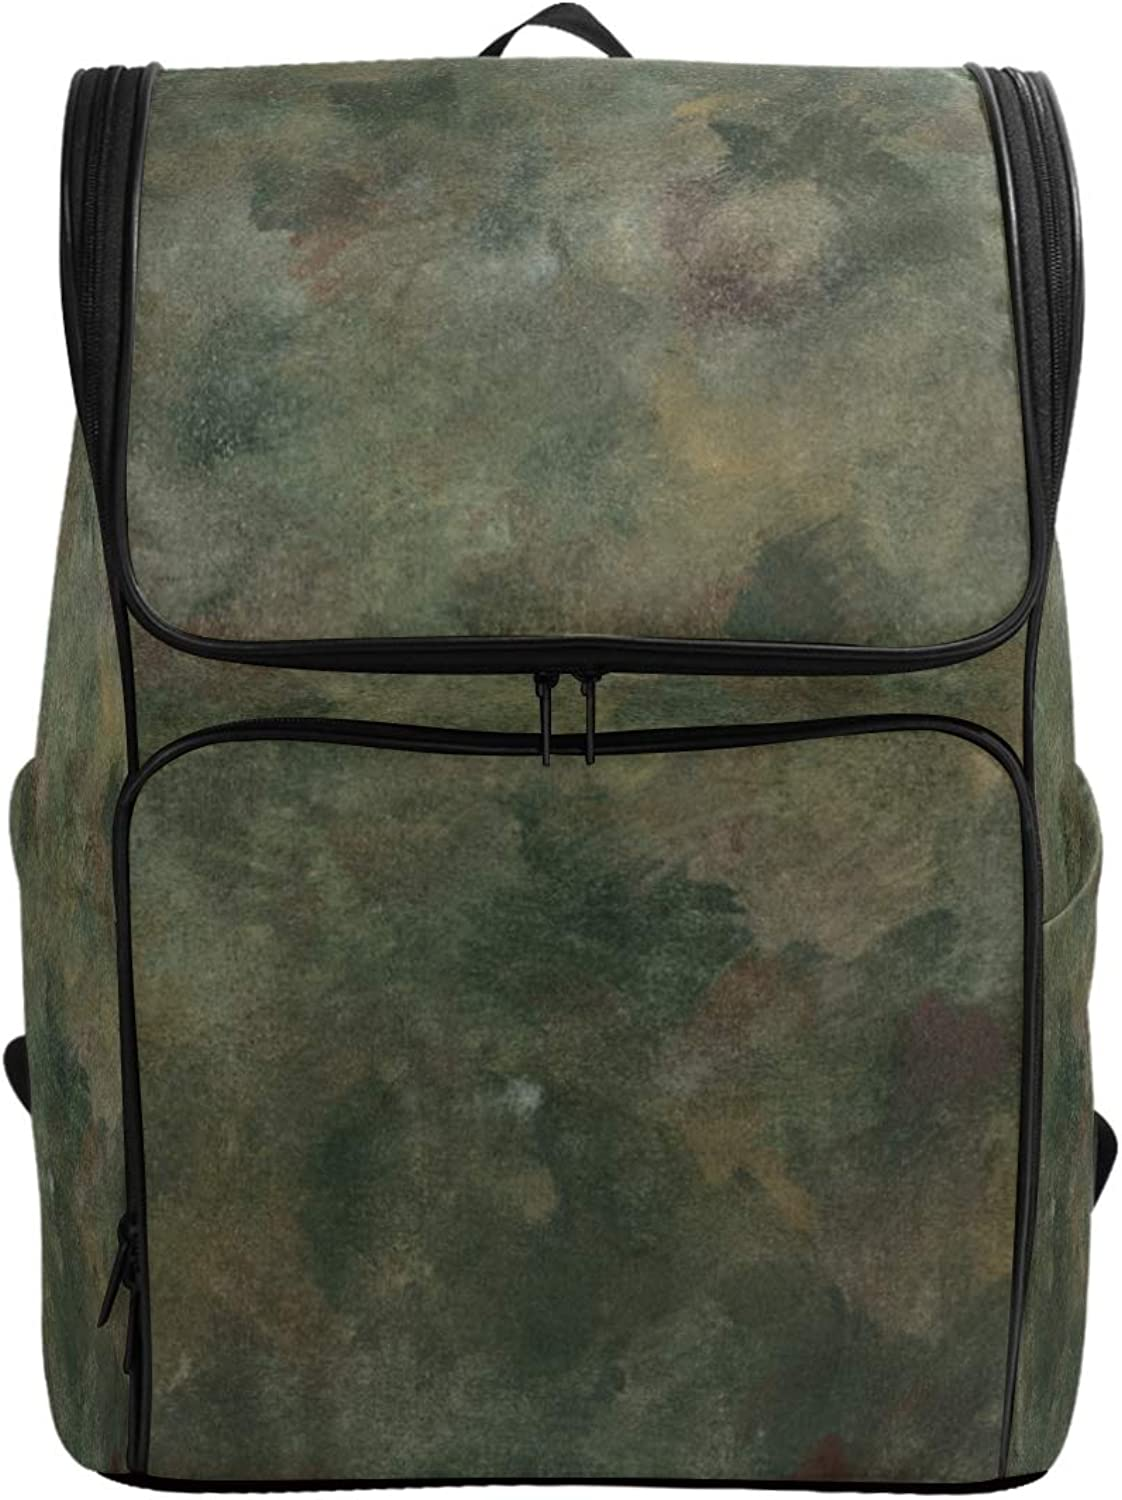 FANTAZIO Abstract European Textures Laptop Outdoor Backpack Travel Hiking Camping Rucksack Pack, Casual Large College School Daypack